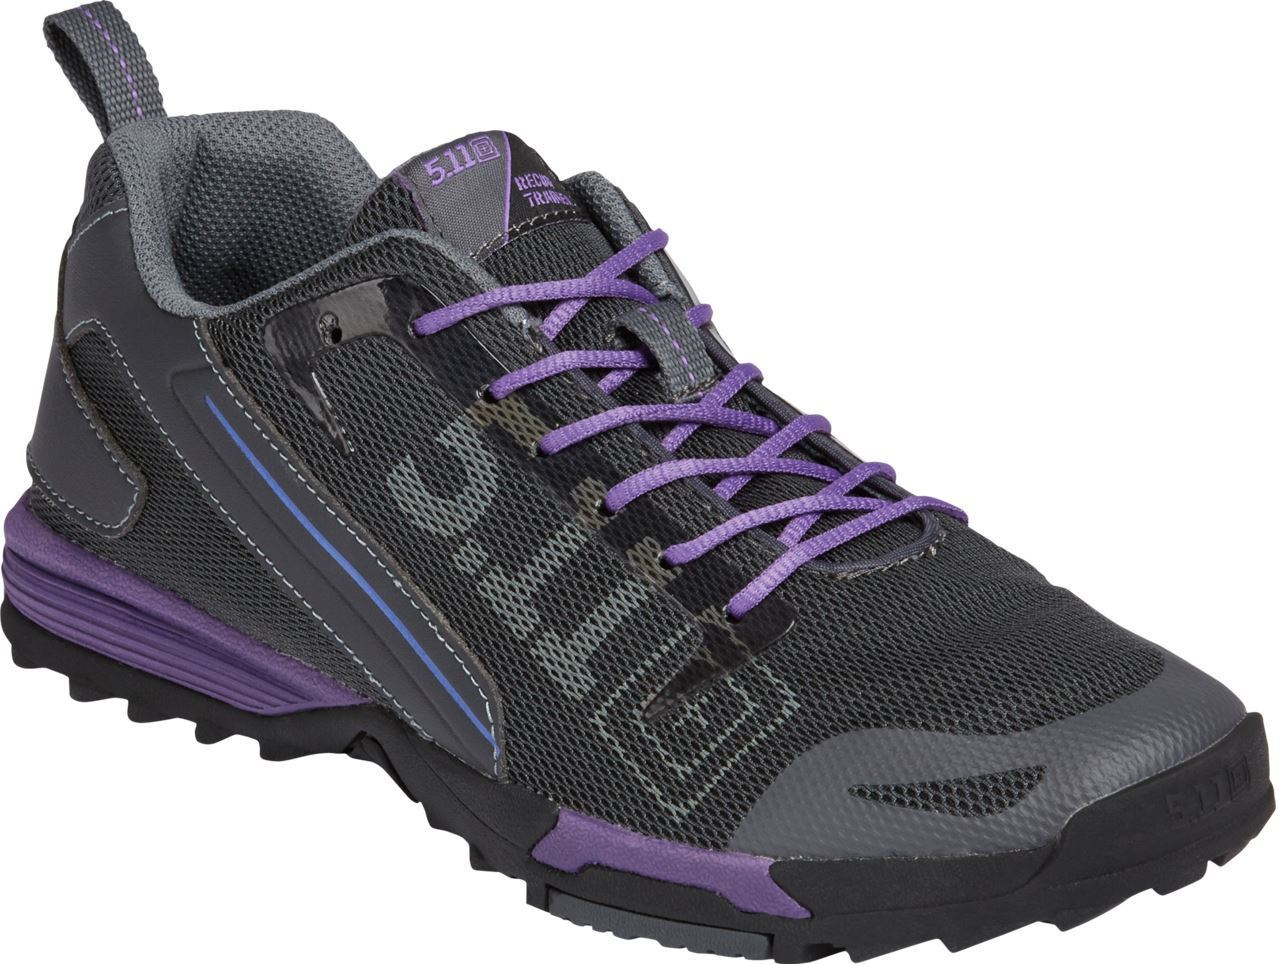 7d8bf8f1cb9 Tactical Footwear | LA Police Gear | Get up to 50% OFF on Tactical ...